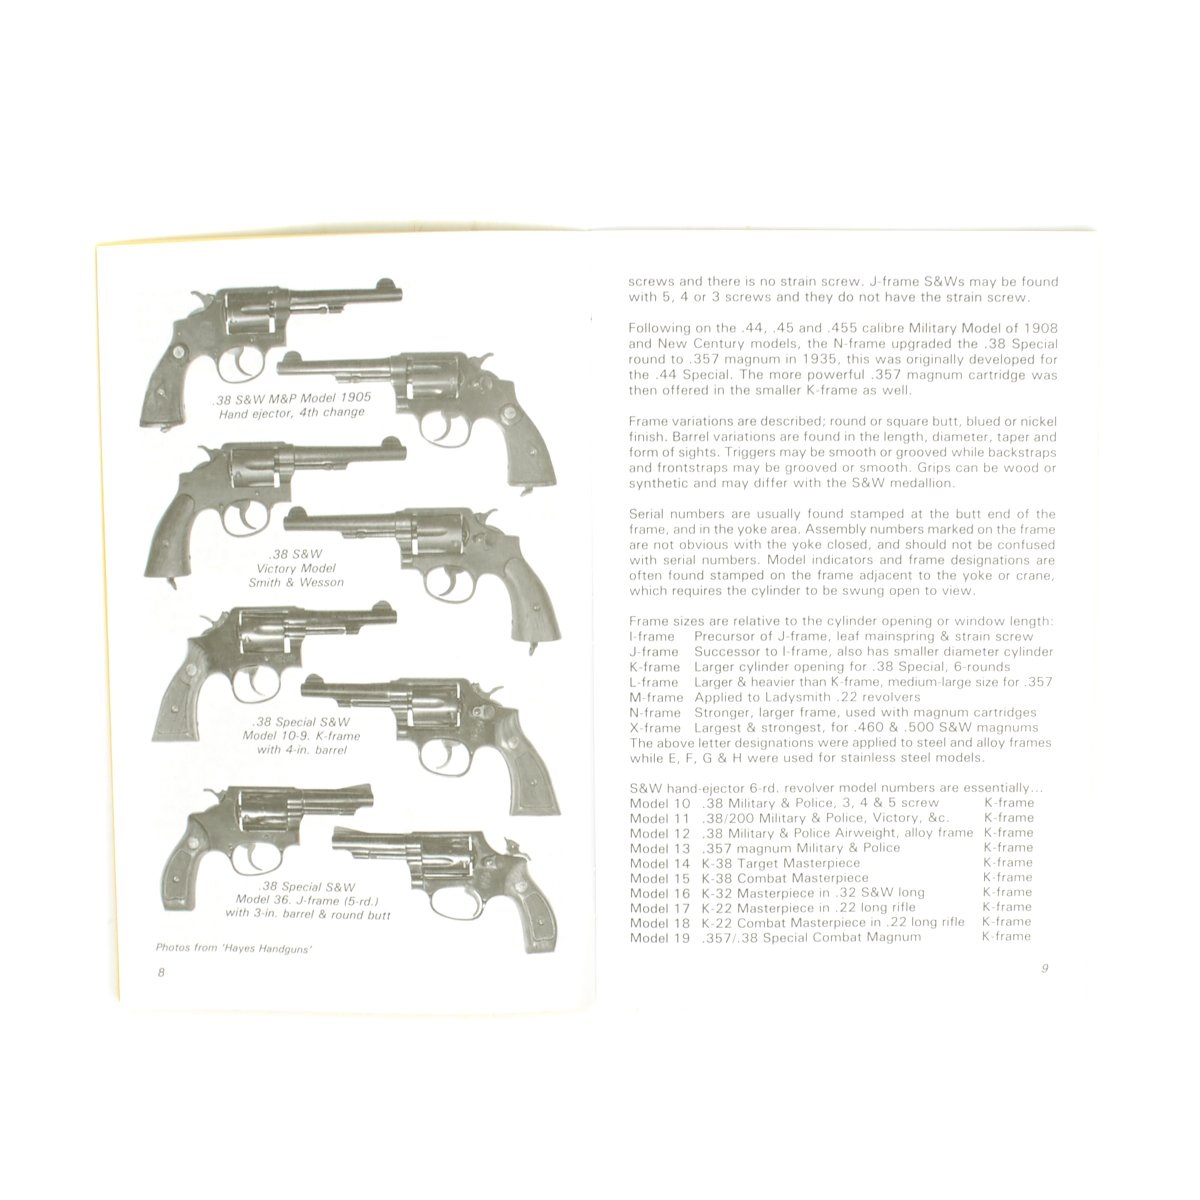 Handbook: SMITH & WESSON REVOLVER